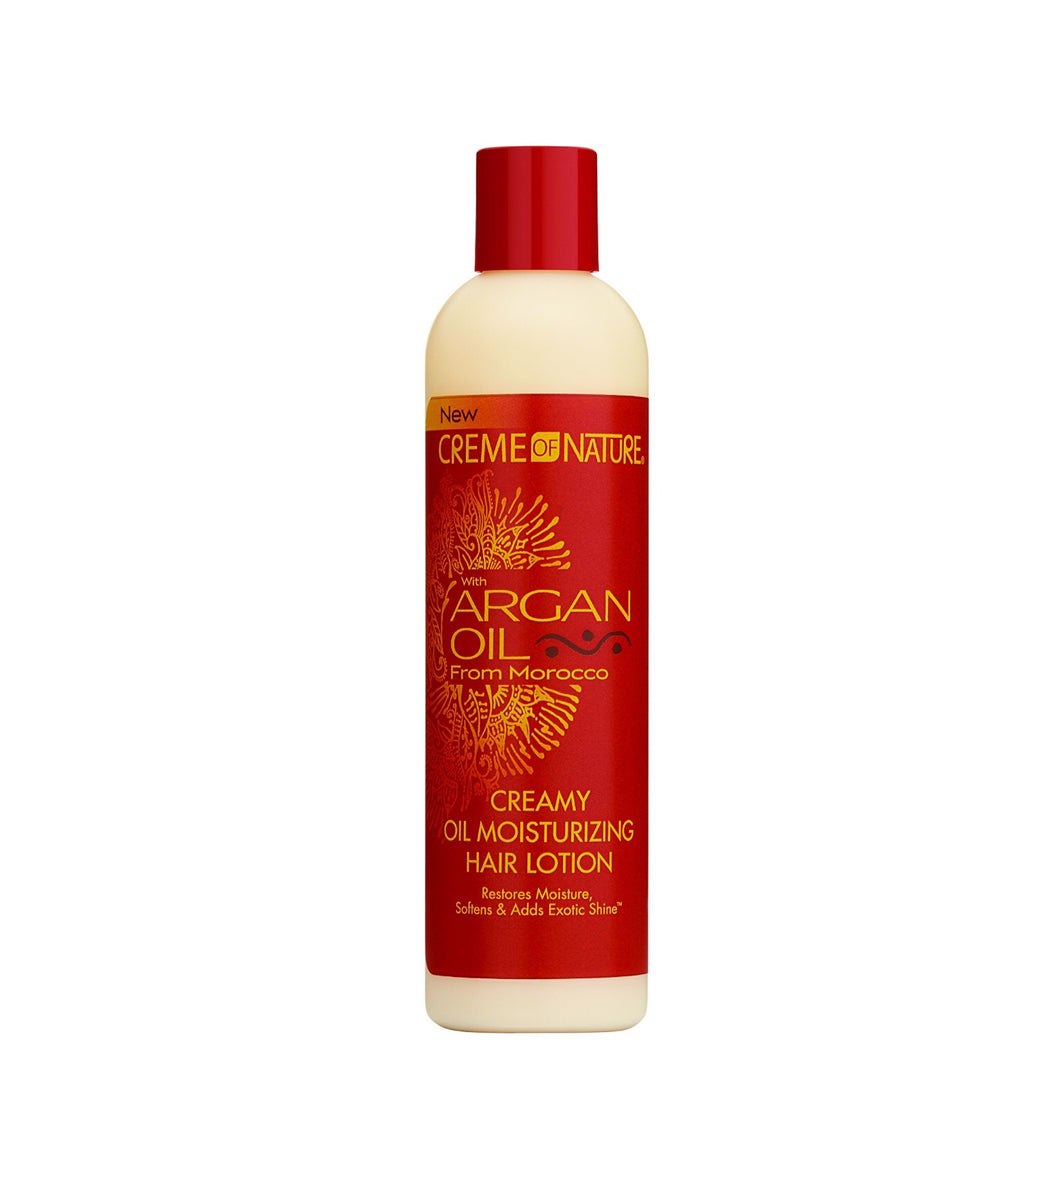 Creme of NATURE organ Oil Hair Lotion